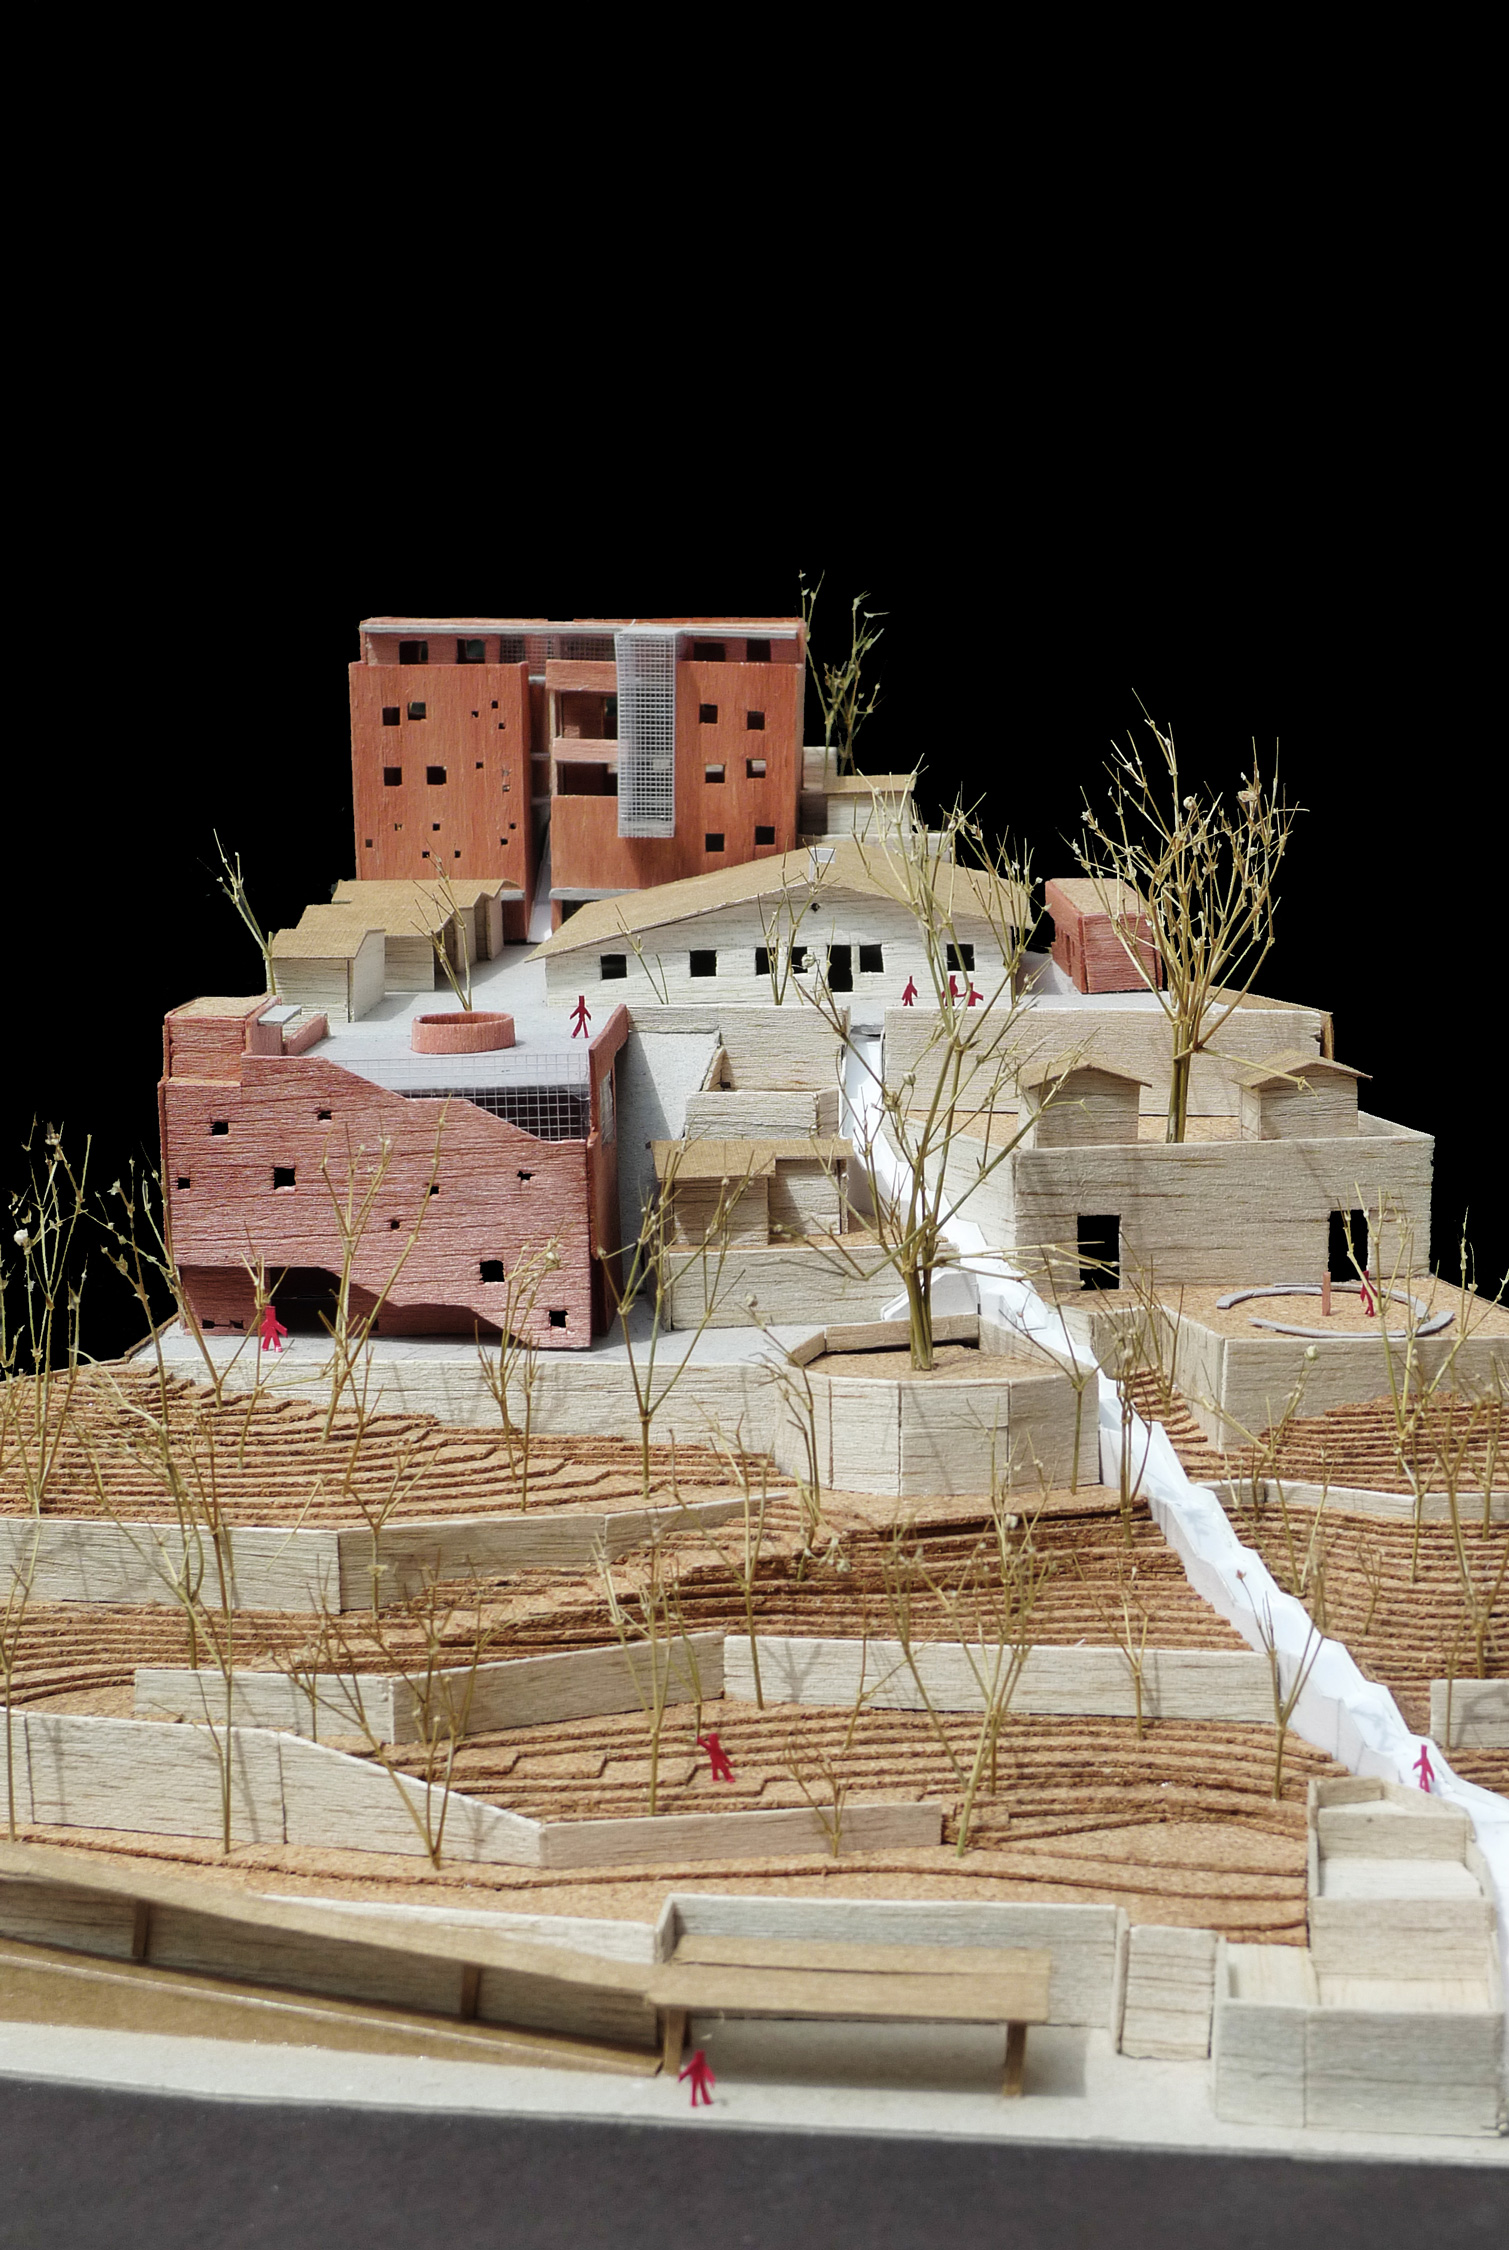 Site and architectural model of proposed scheme, Casa de Oxumarê